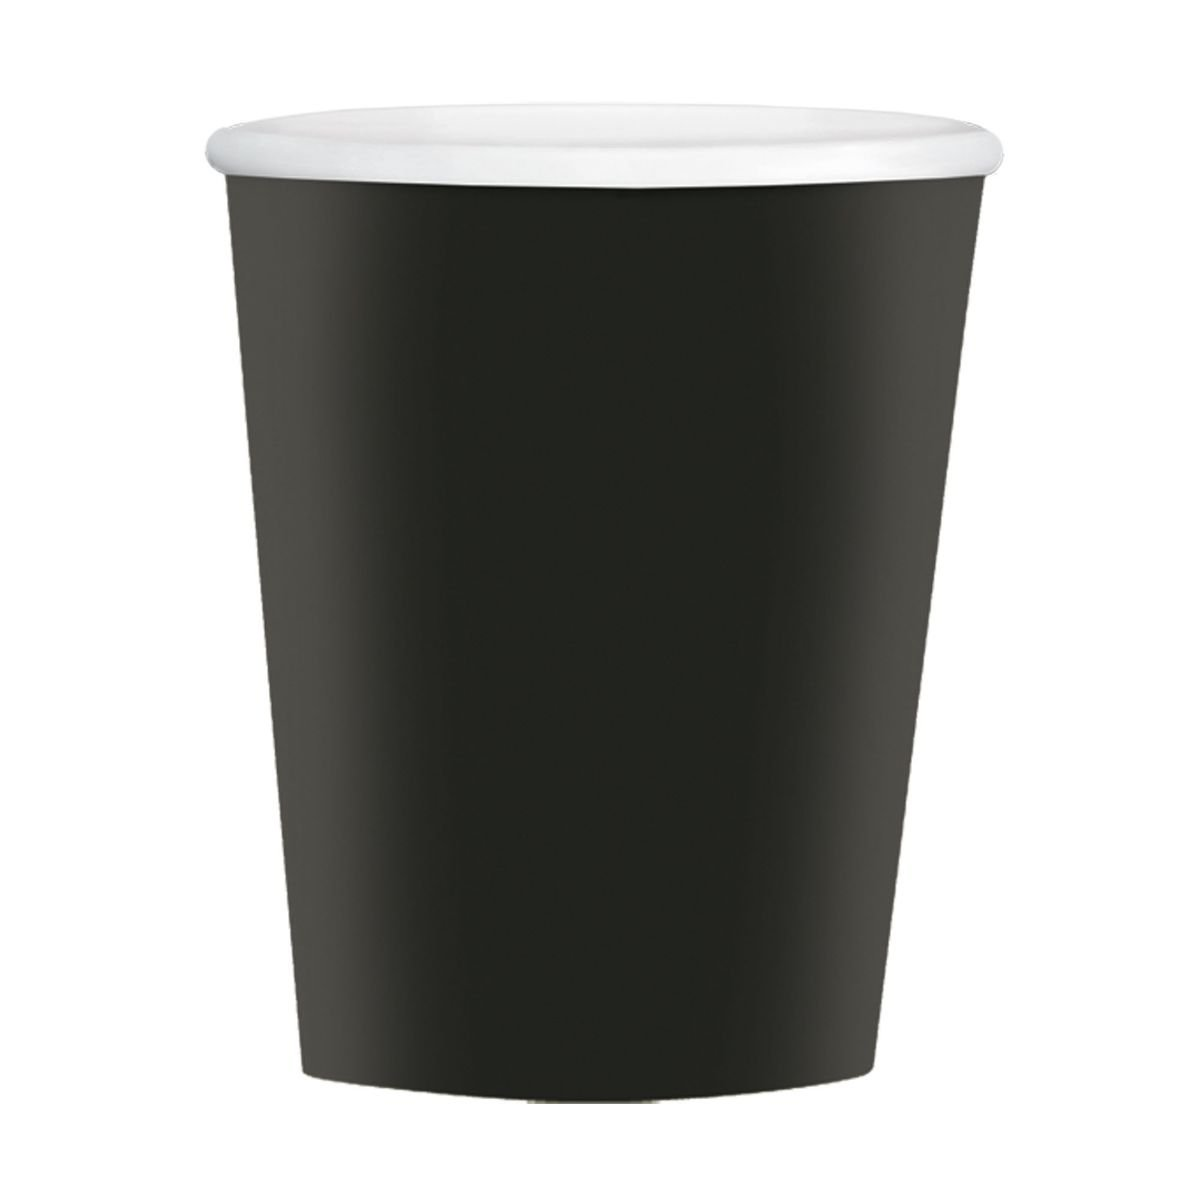 Amscan Disposable Paper Coffee Cups for Hot and Cold Beverages (40 Pack), 12 oz, Jet Black